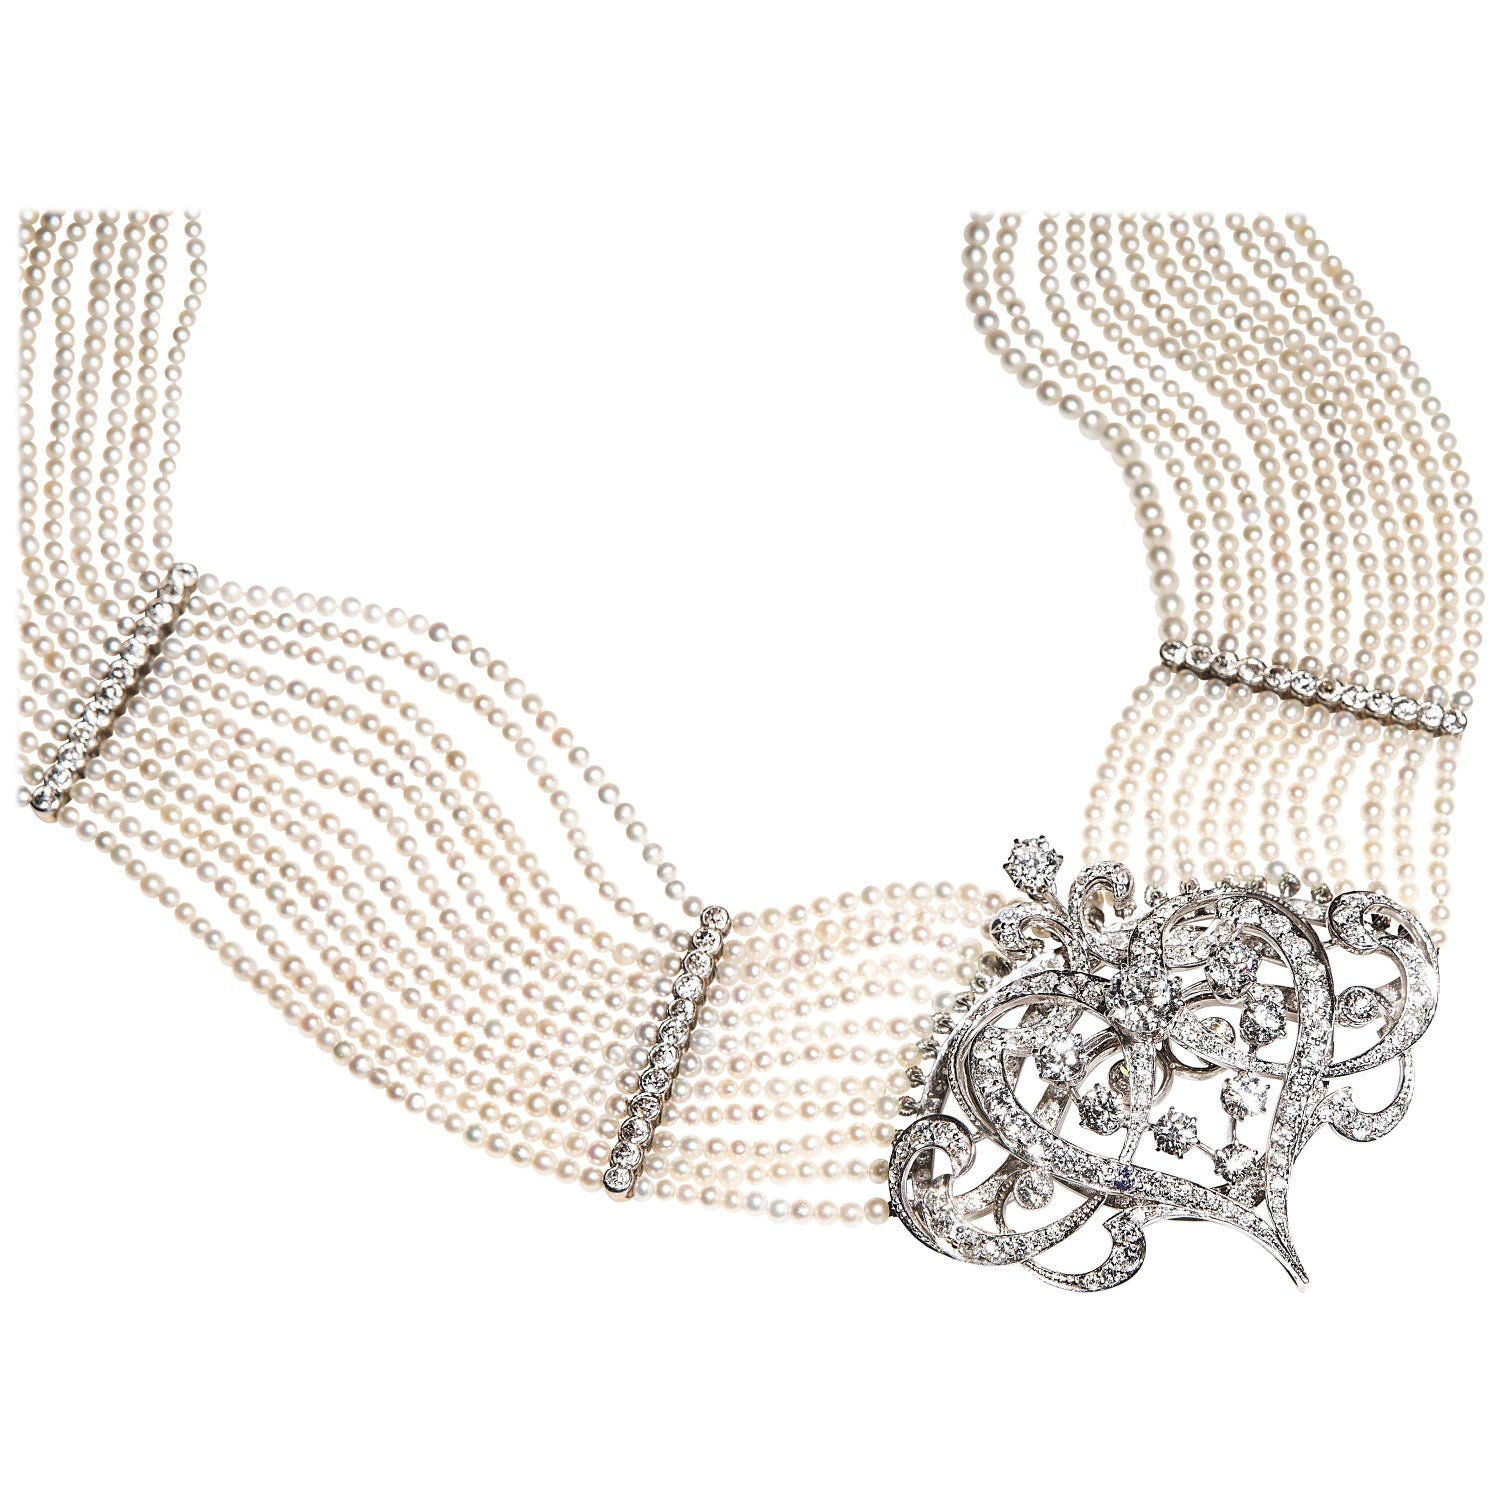 Pearl necklace Vintage beautiful choker of rice-grain seeds-pearls Gold 9K